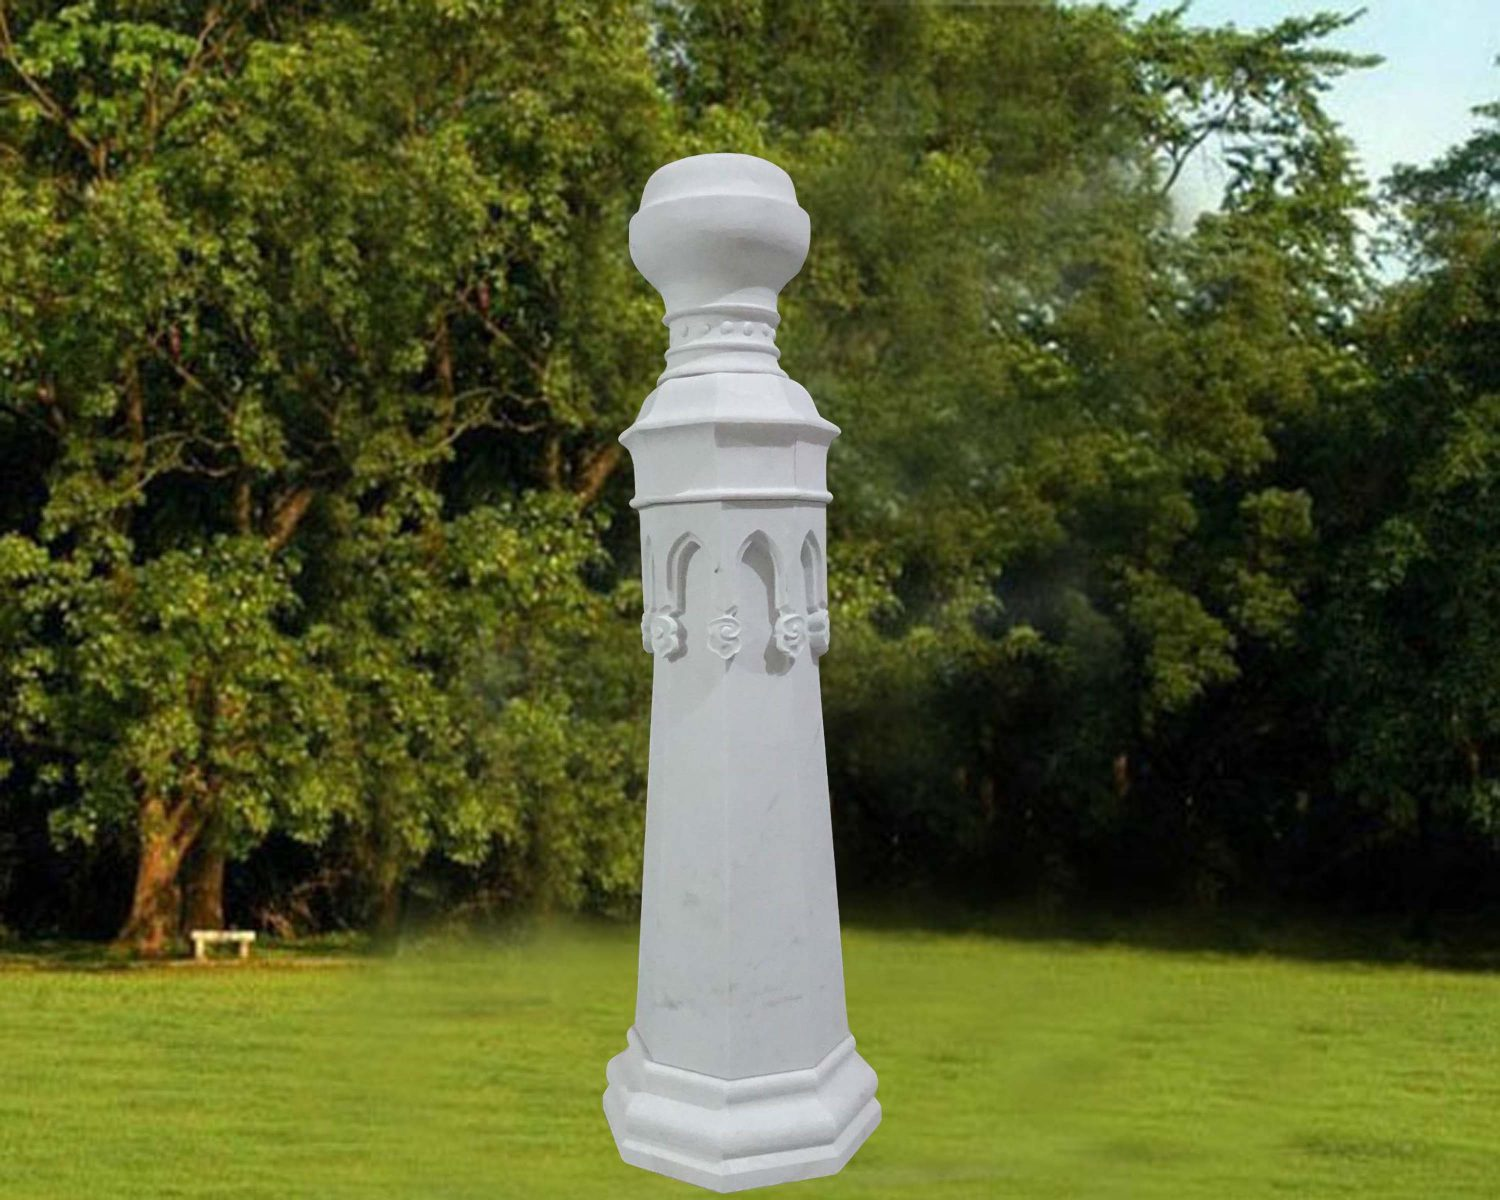 EG-15-206-915 / White Marble / Antique Gothic Obelisk with Urn